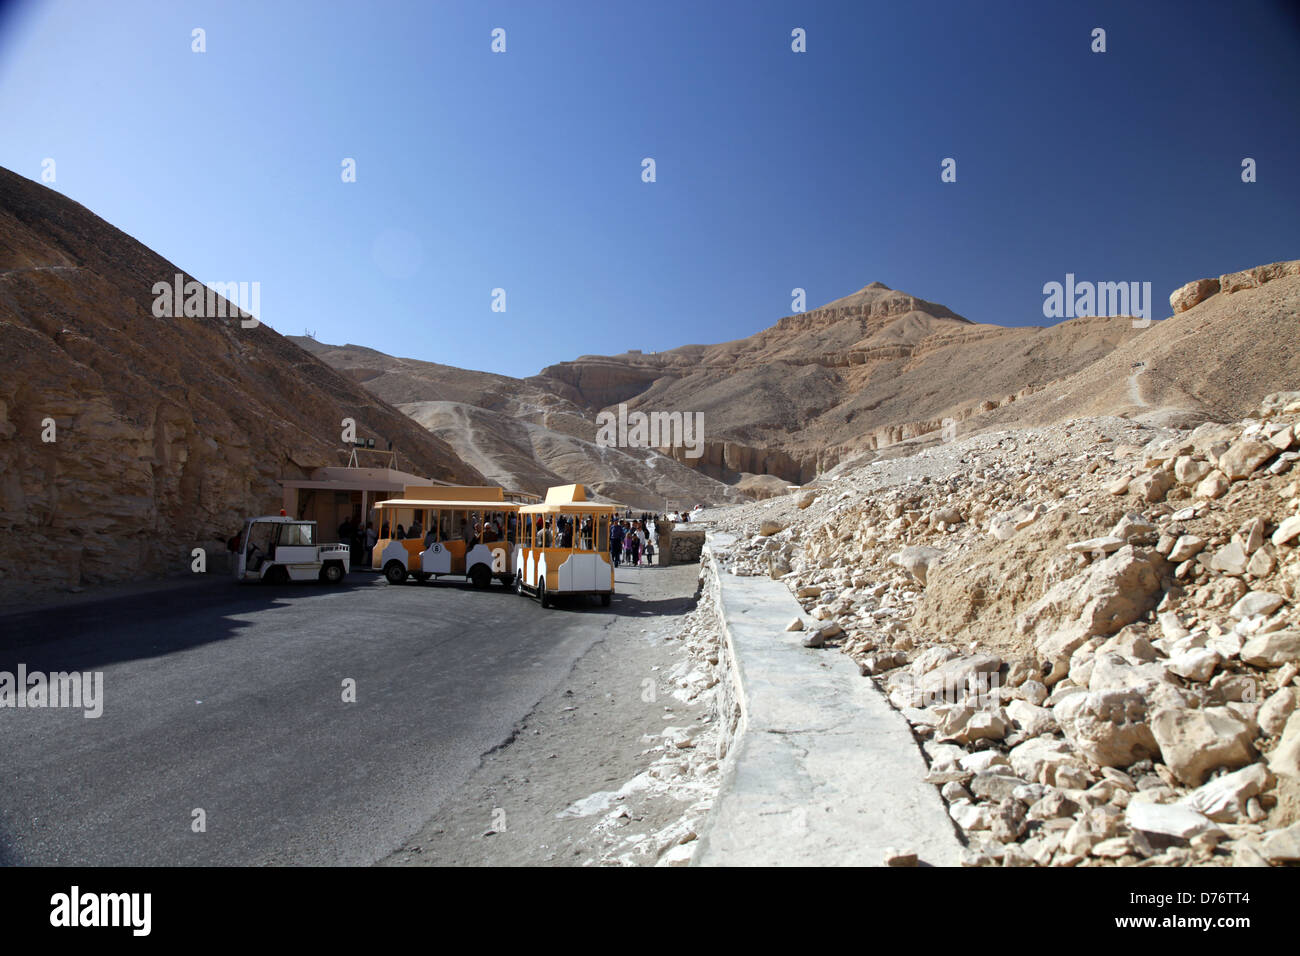 ELECTRIC TRAIN AT VALLEY OF THE KINGS ENTRANCE WEST BANK LUXOR EGYPT 08 January 2013 - Stock Image